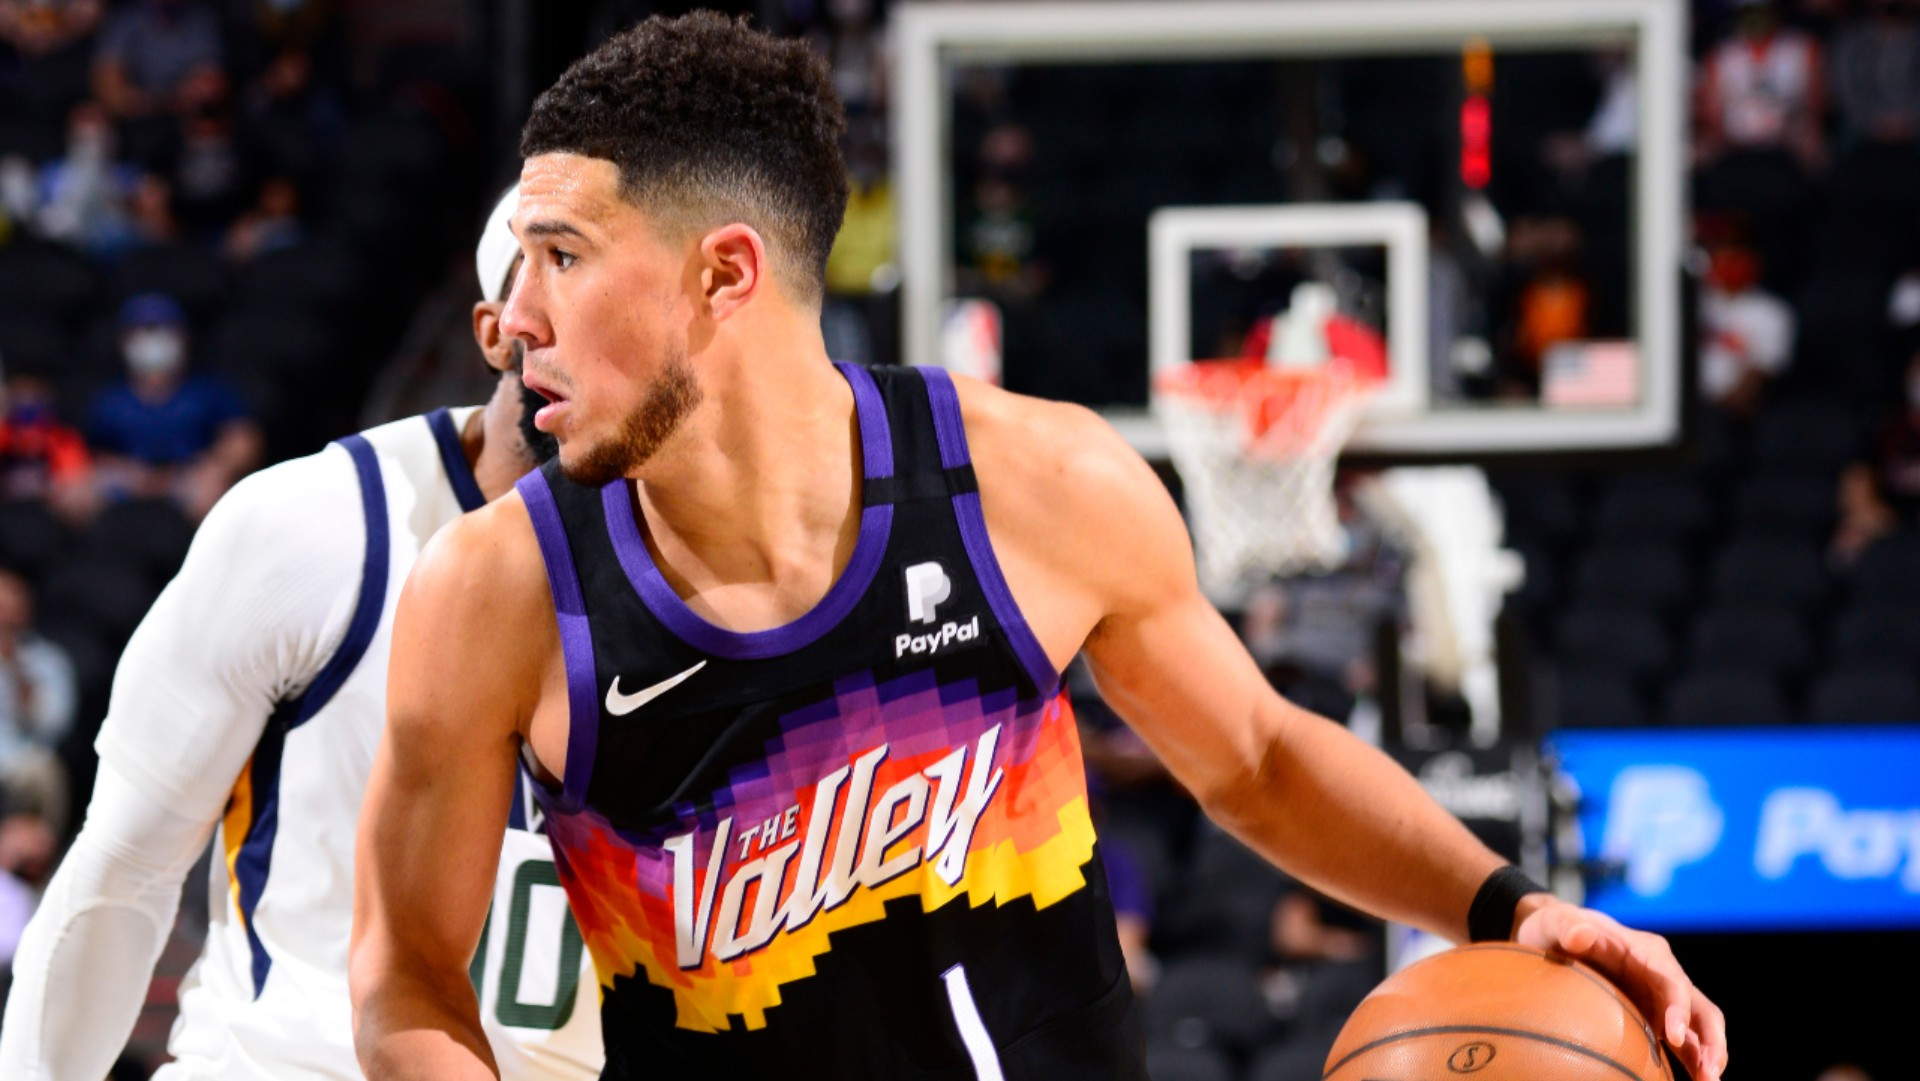 The Phoenix Suns won an entertaining battle between the two best teams in the NBA, while Kevin Durant returned midweek.